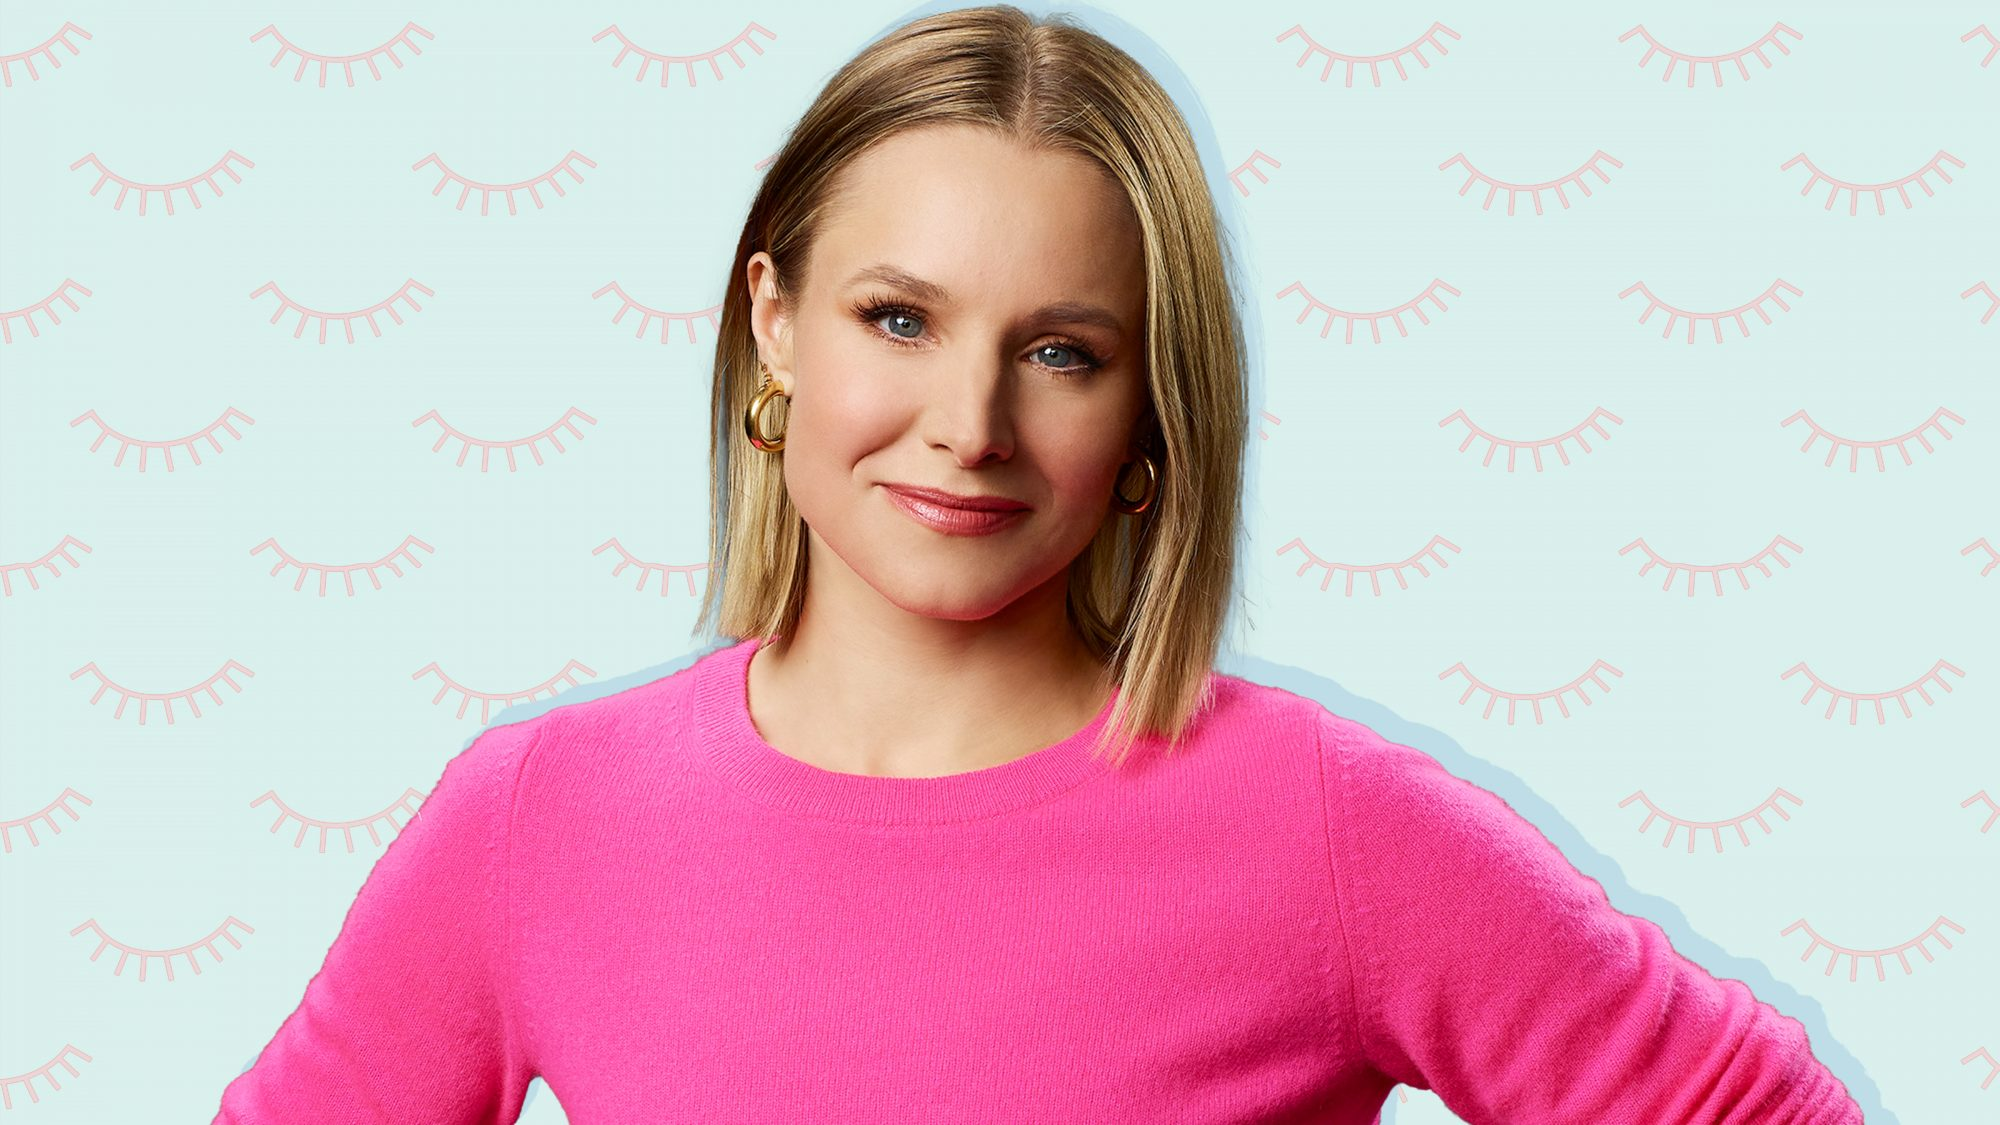 Kristen-Bell-Just-Revealed-the-Mascara-She-Swears-By-for-Her-No-Makeup-Look-GettyImages-1234100944